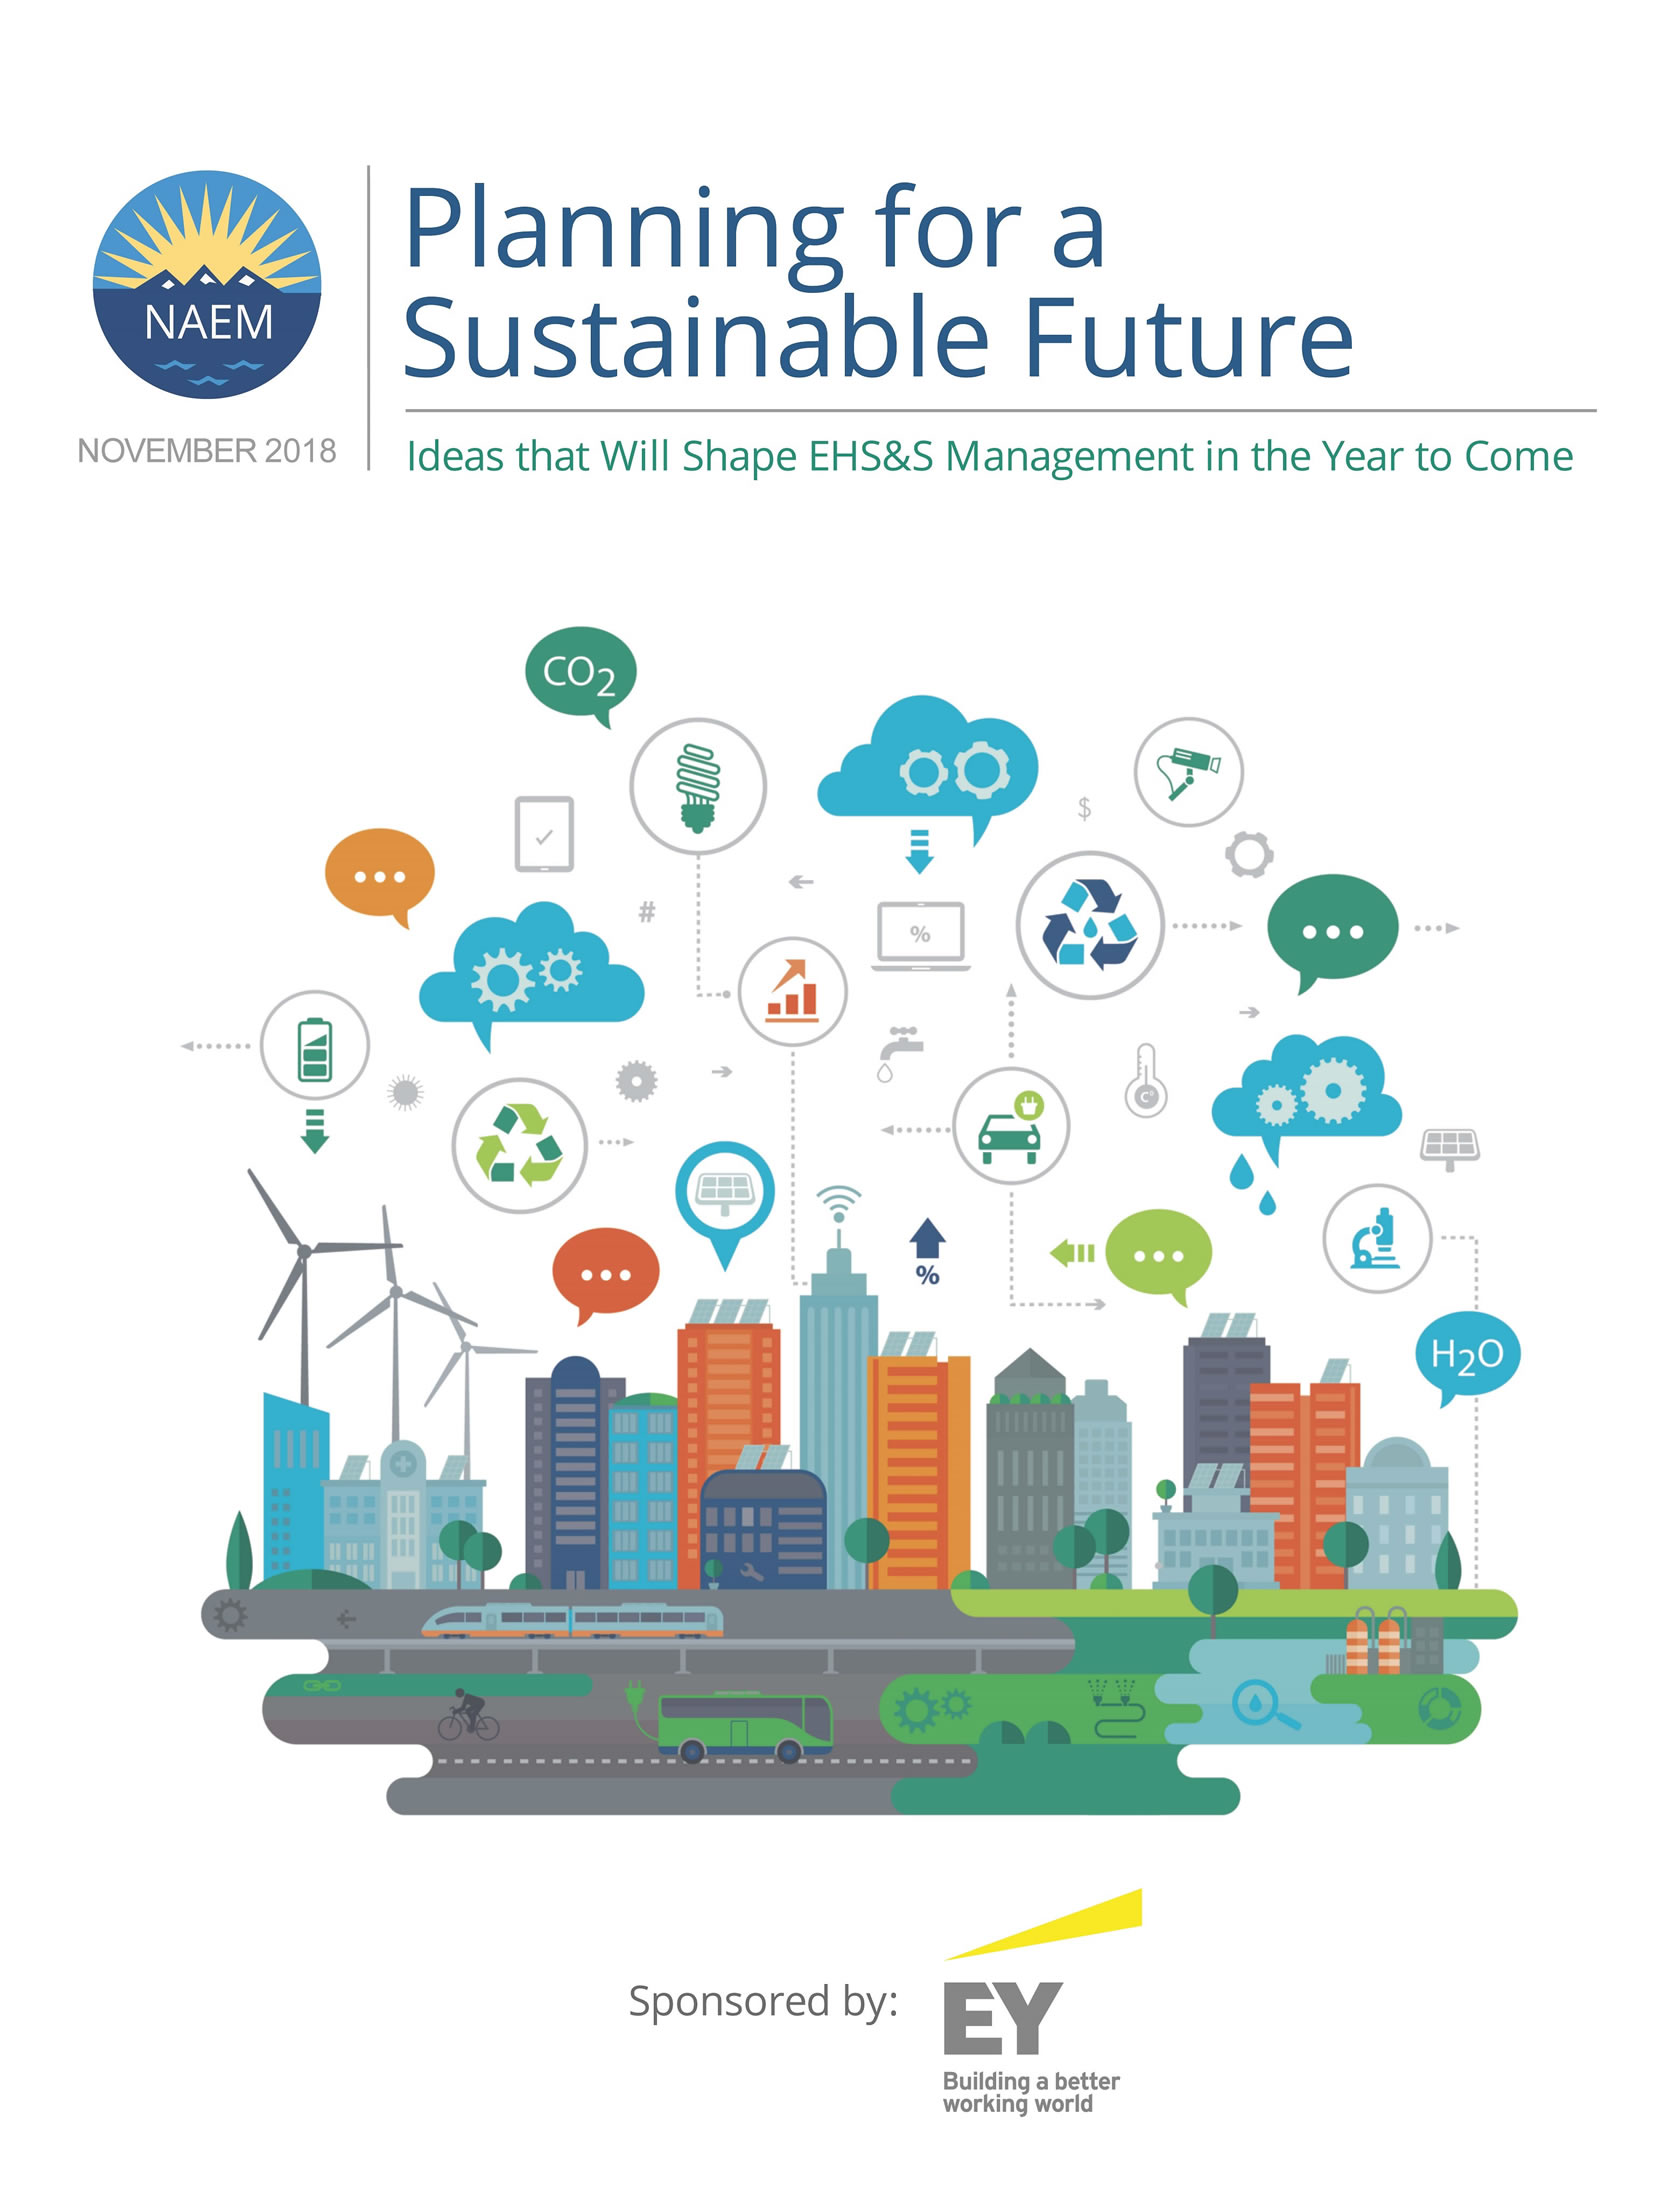 2018 Planning for a Sustainable Future: Ideas that Will Shape EHS&S Management in the Year to Come